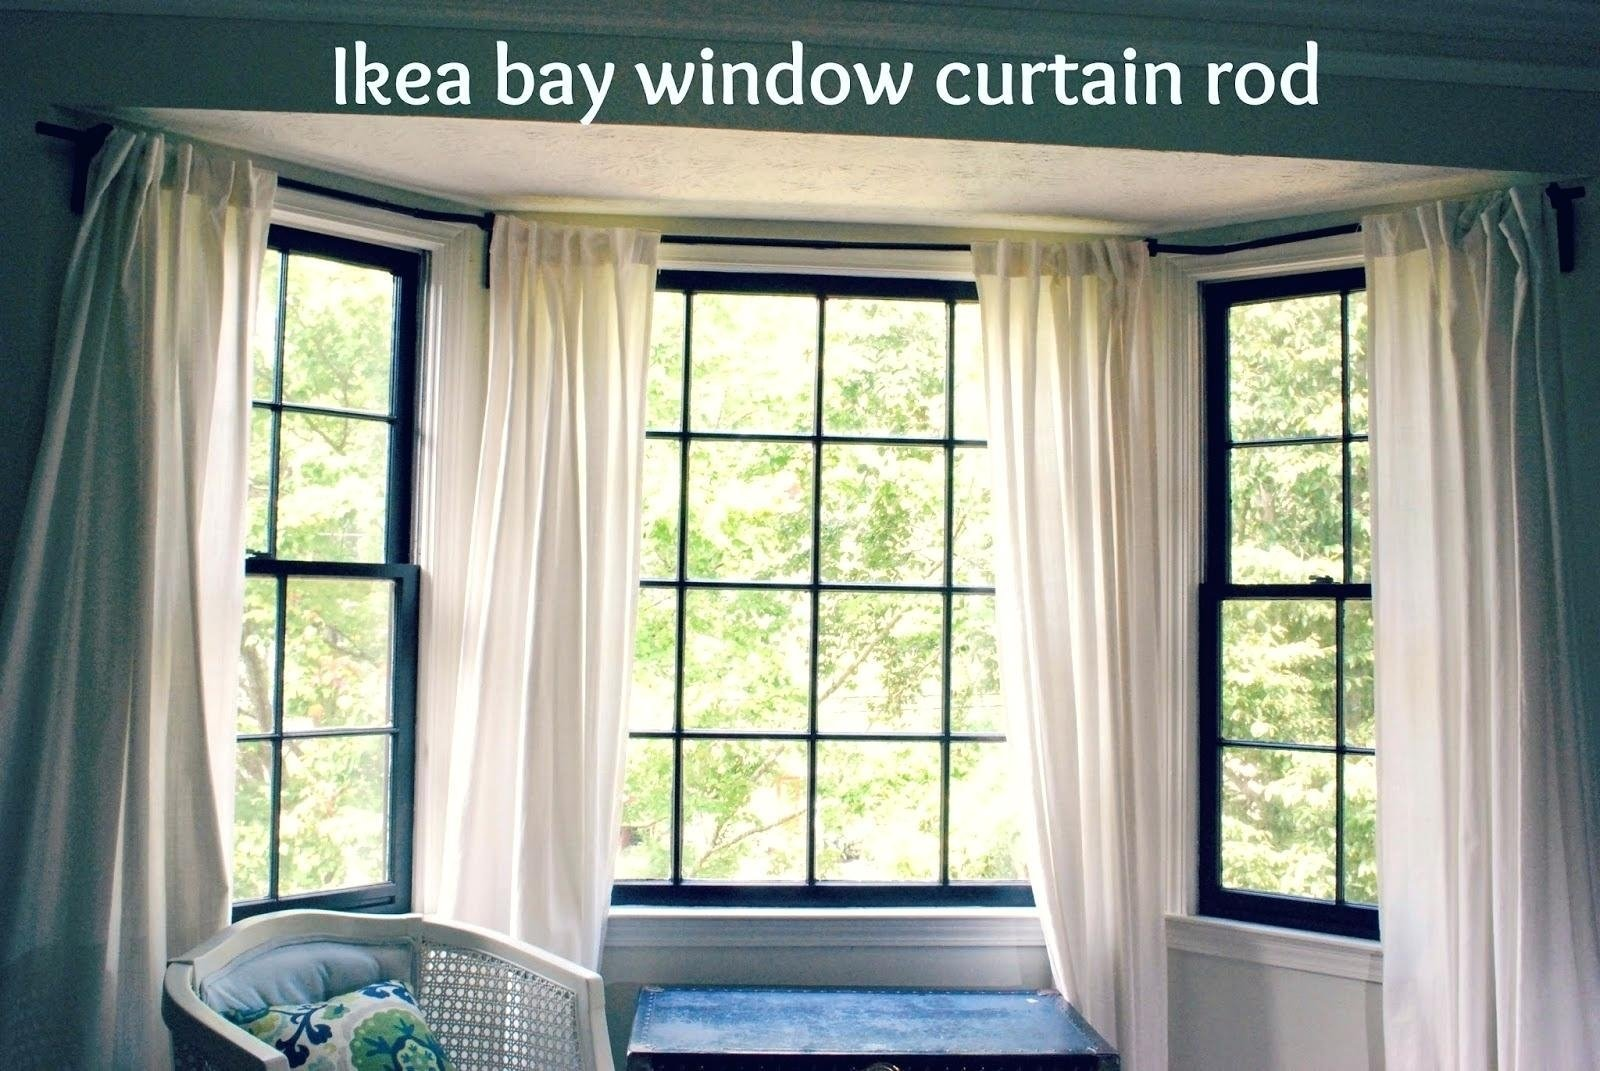 10 Wonderful Bay Window Treatment Ideas Pictures marvelous small kitchen bay window treatment ideas cordial living 2020